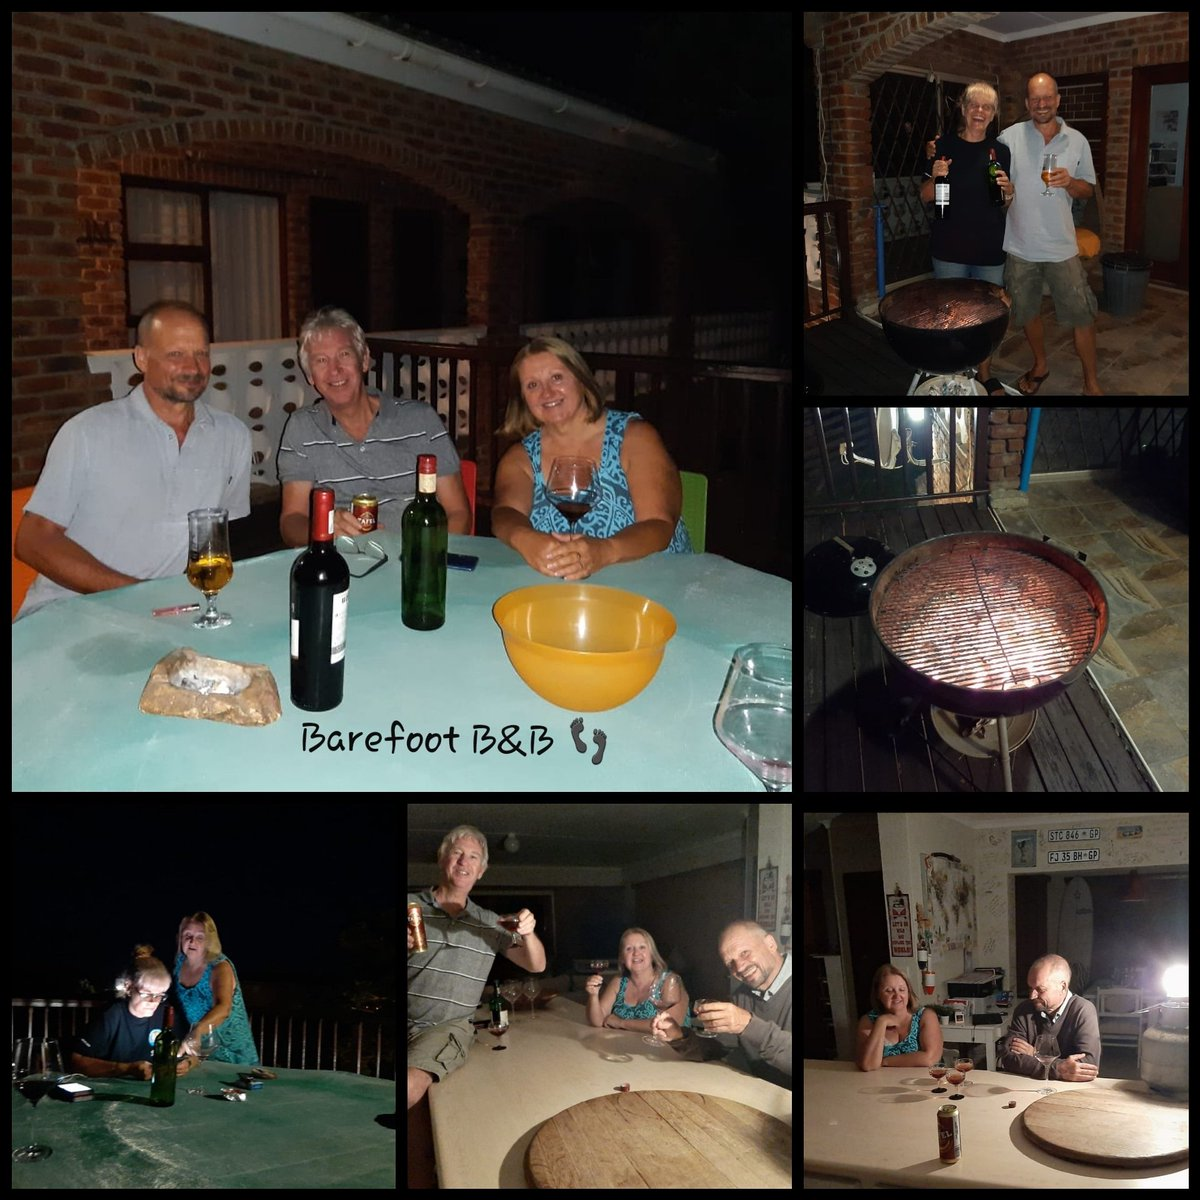 Loadshedding = braai time 😉 Another fun-filled evening at Barefoot B&B. Introducing our German guest to Pap, wors en sous 🍻 #weloveourguests #whatloadshedding #fridayisbraaiday #papensous #morganbay #barefoot #coastaldestinations #coastalvibes #accommodation #bedandbreakfast